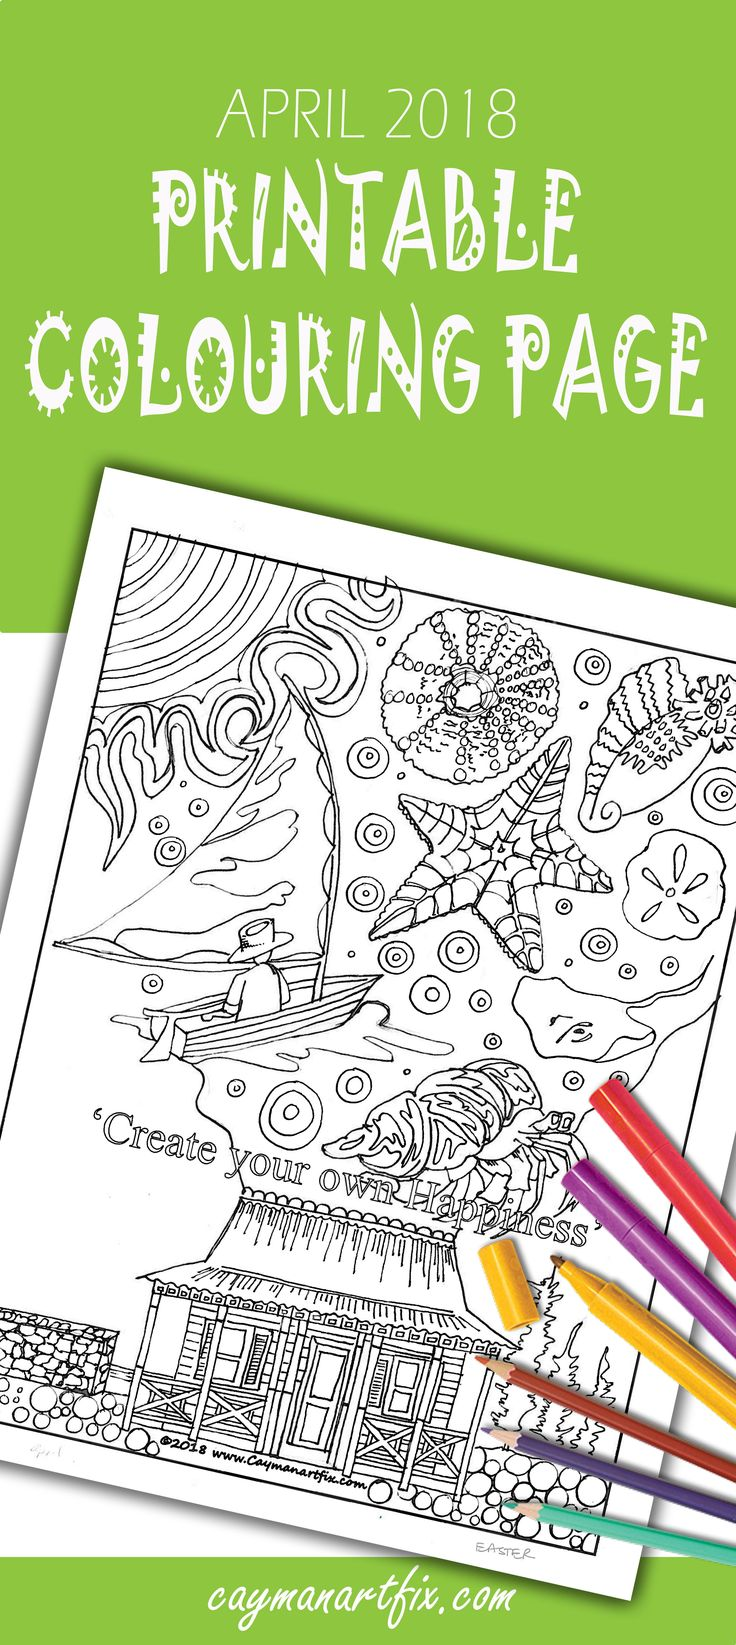 85 best Coloring Pages images on Pinterest | Coloring pages, Draw ...